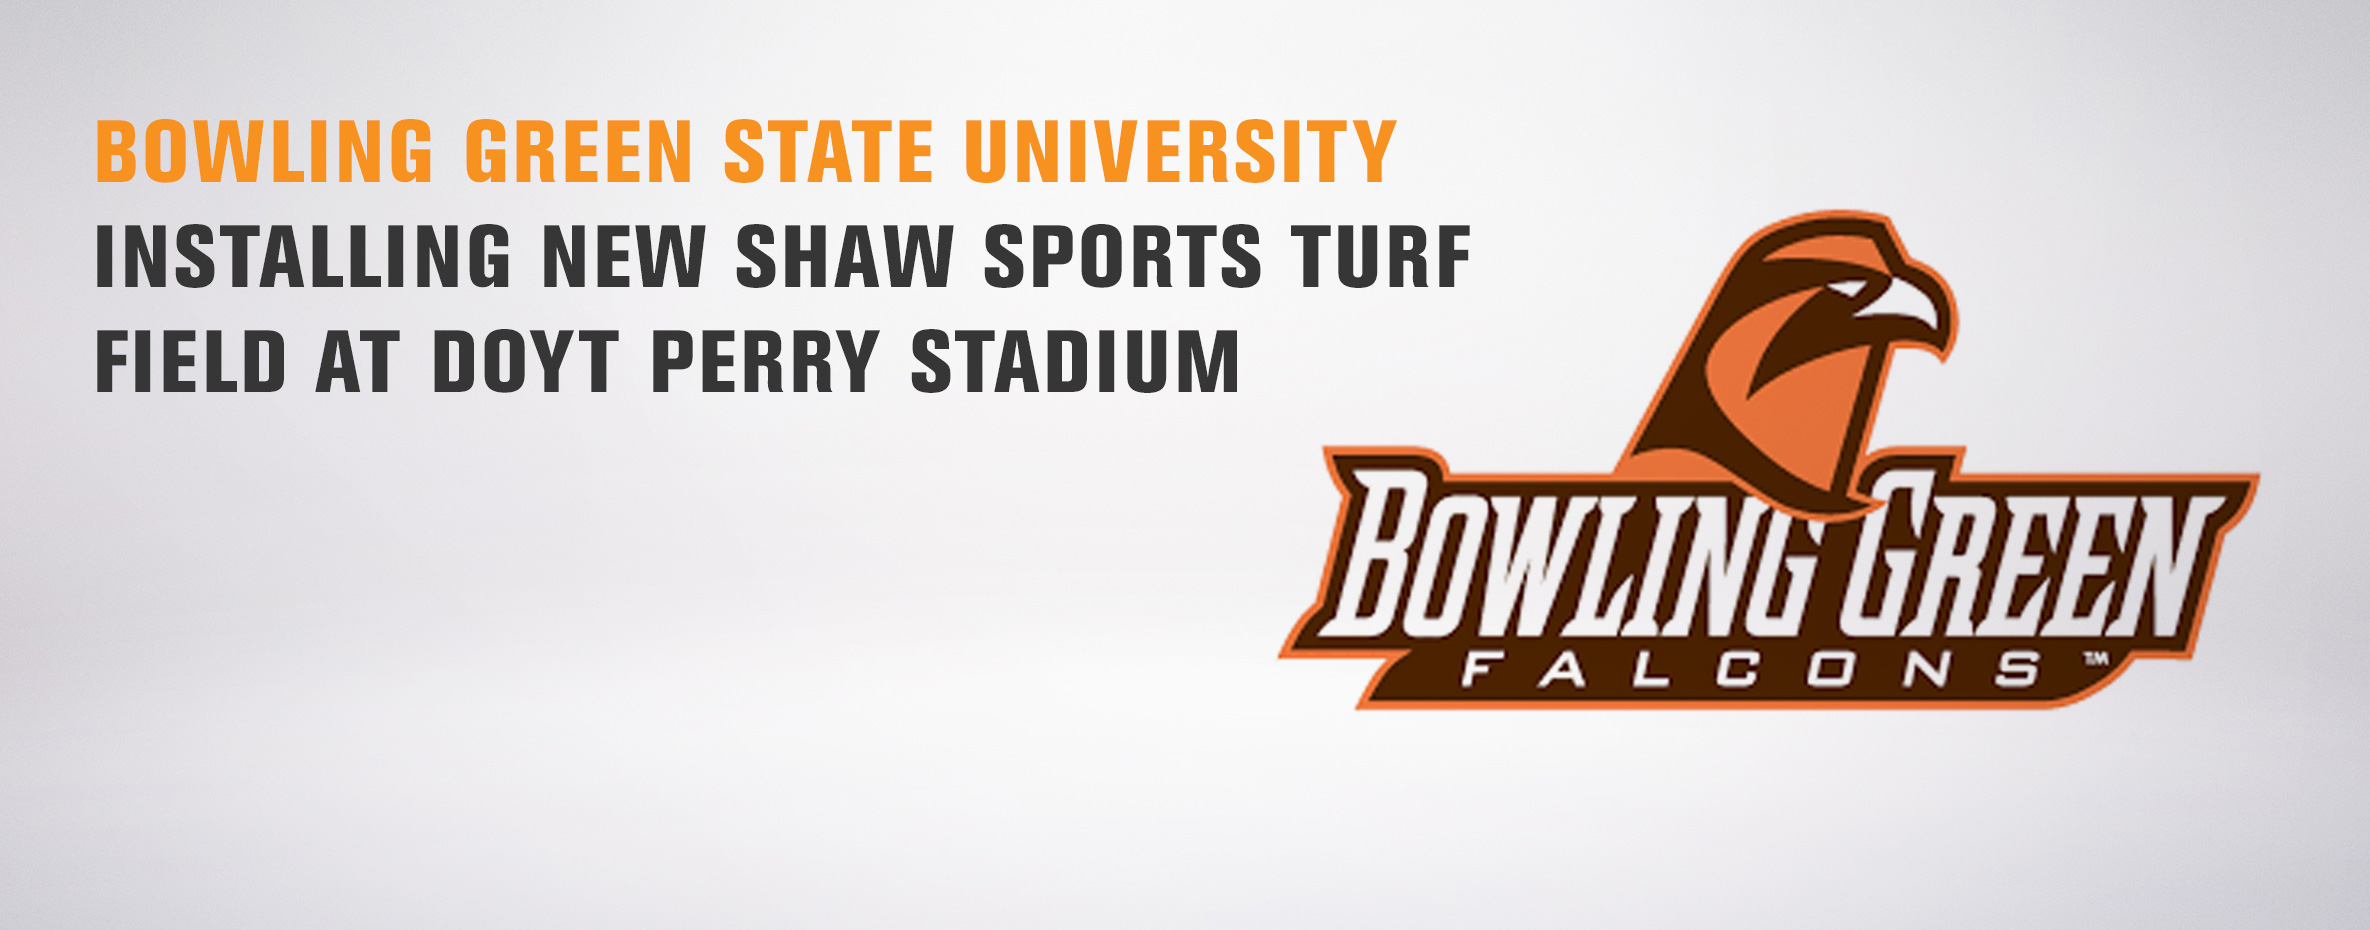 BOWLING GREEN STATE UNIVERSITY INSTALLING NEW SHAW SPORTS TURF FIELD AT DOYT PERRY STADIUM Image